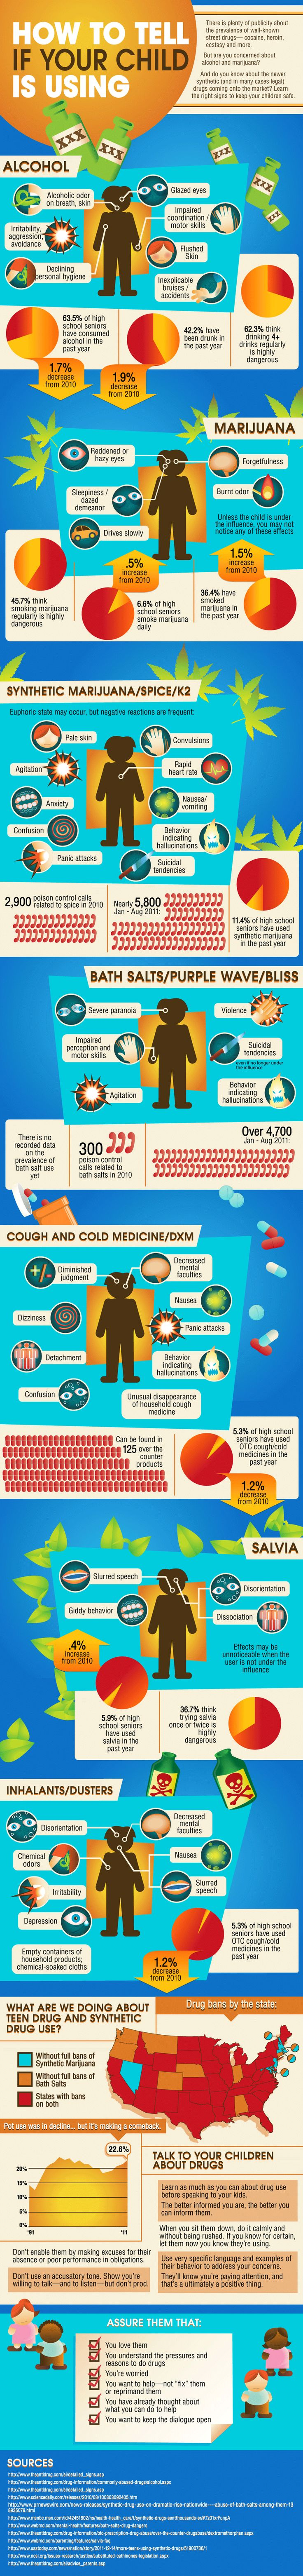 best ideas about drugs abuse substance abuse signs and symptoms of teen drug use infographic